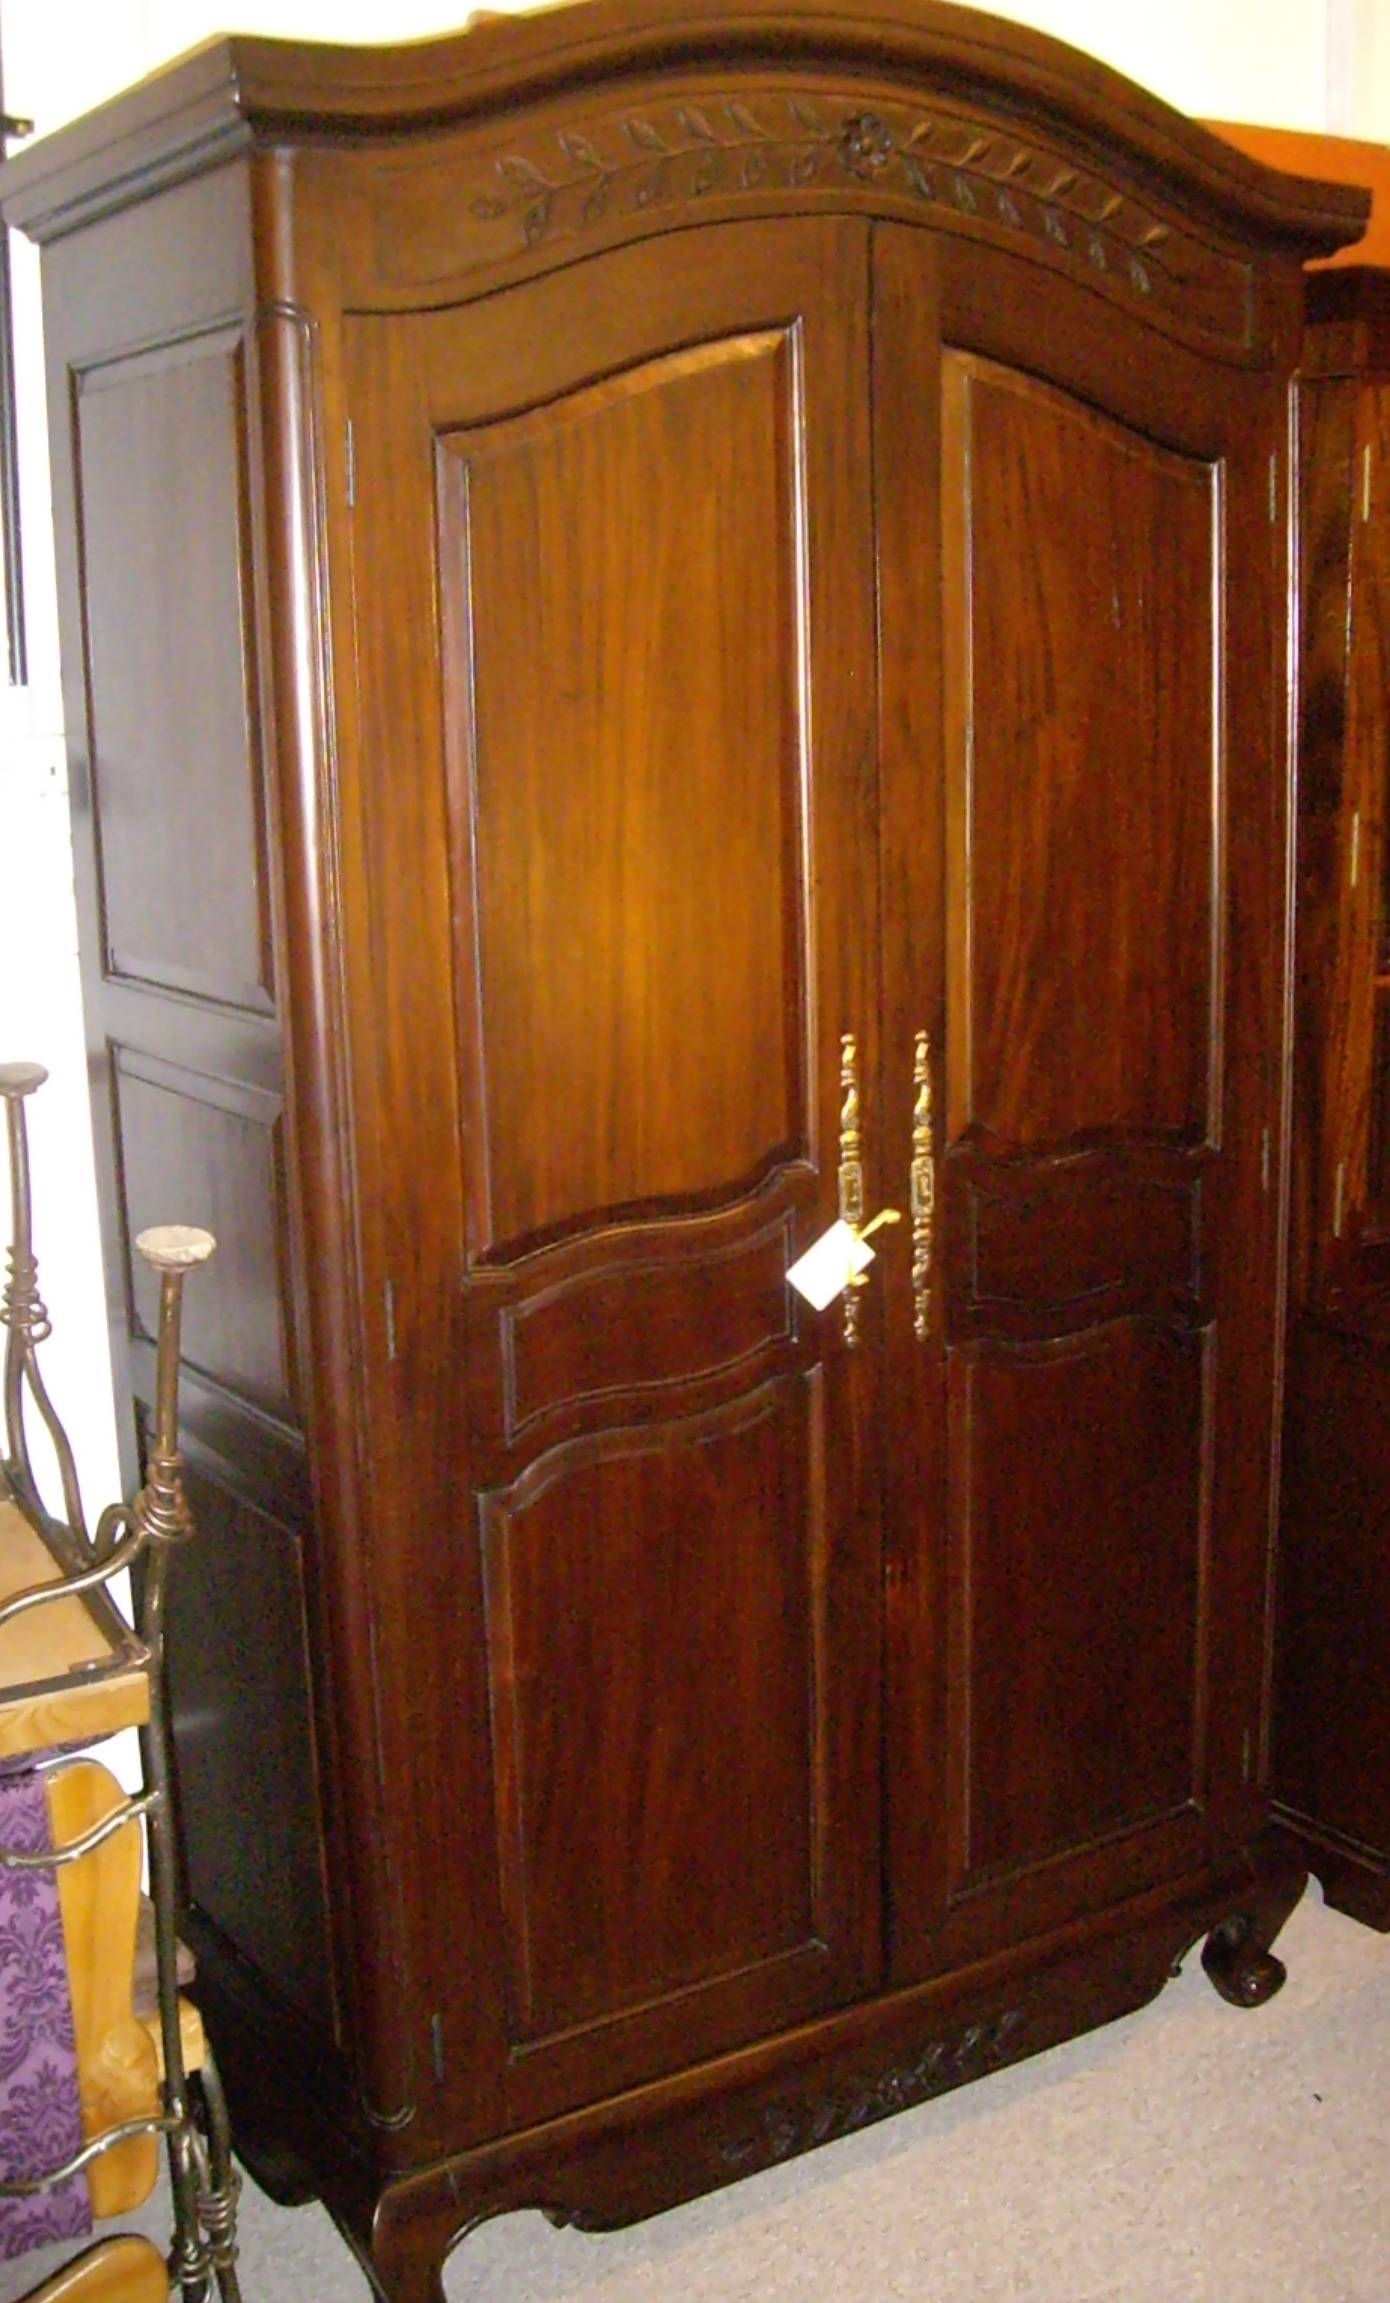 English & Scottish Antique Furniture & Decorative Antiques within Dark Wood Wardrobes (Image 16 of 30)